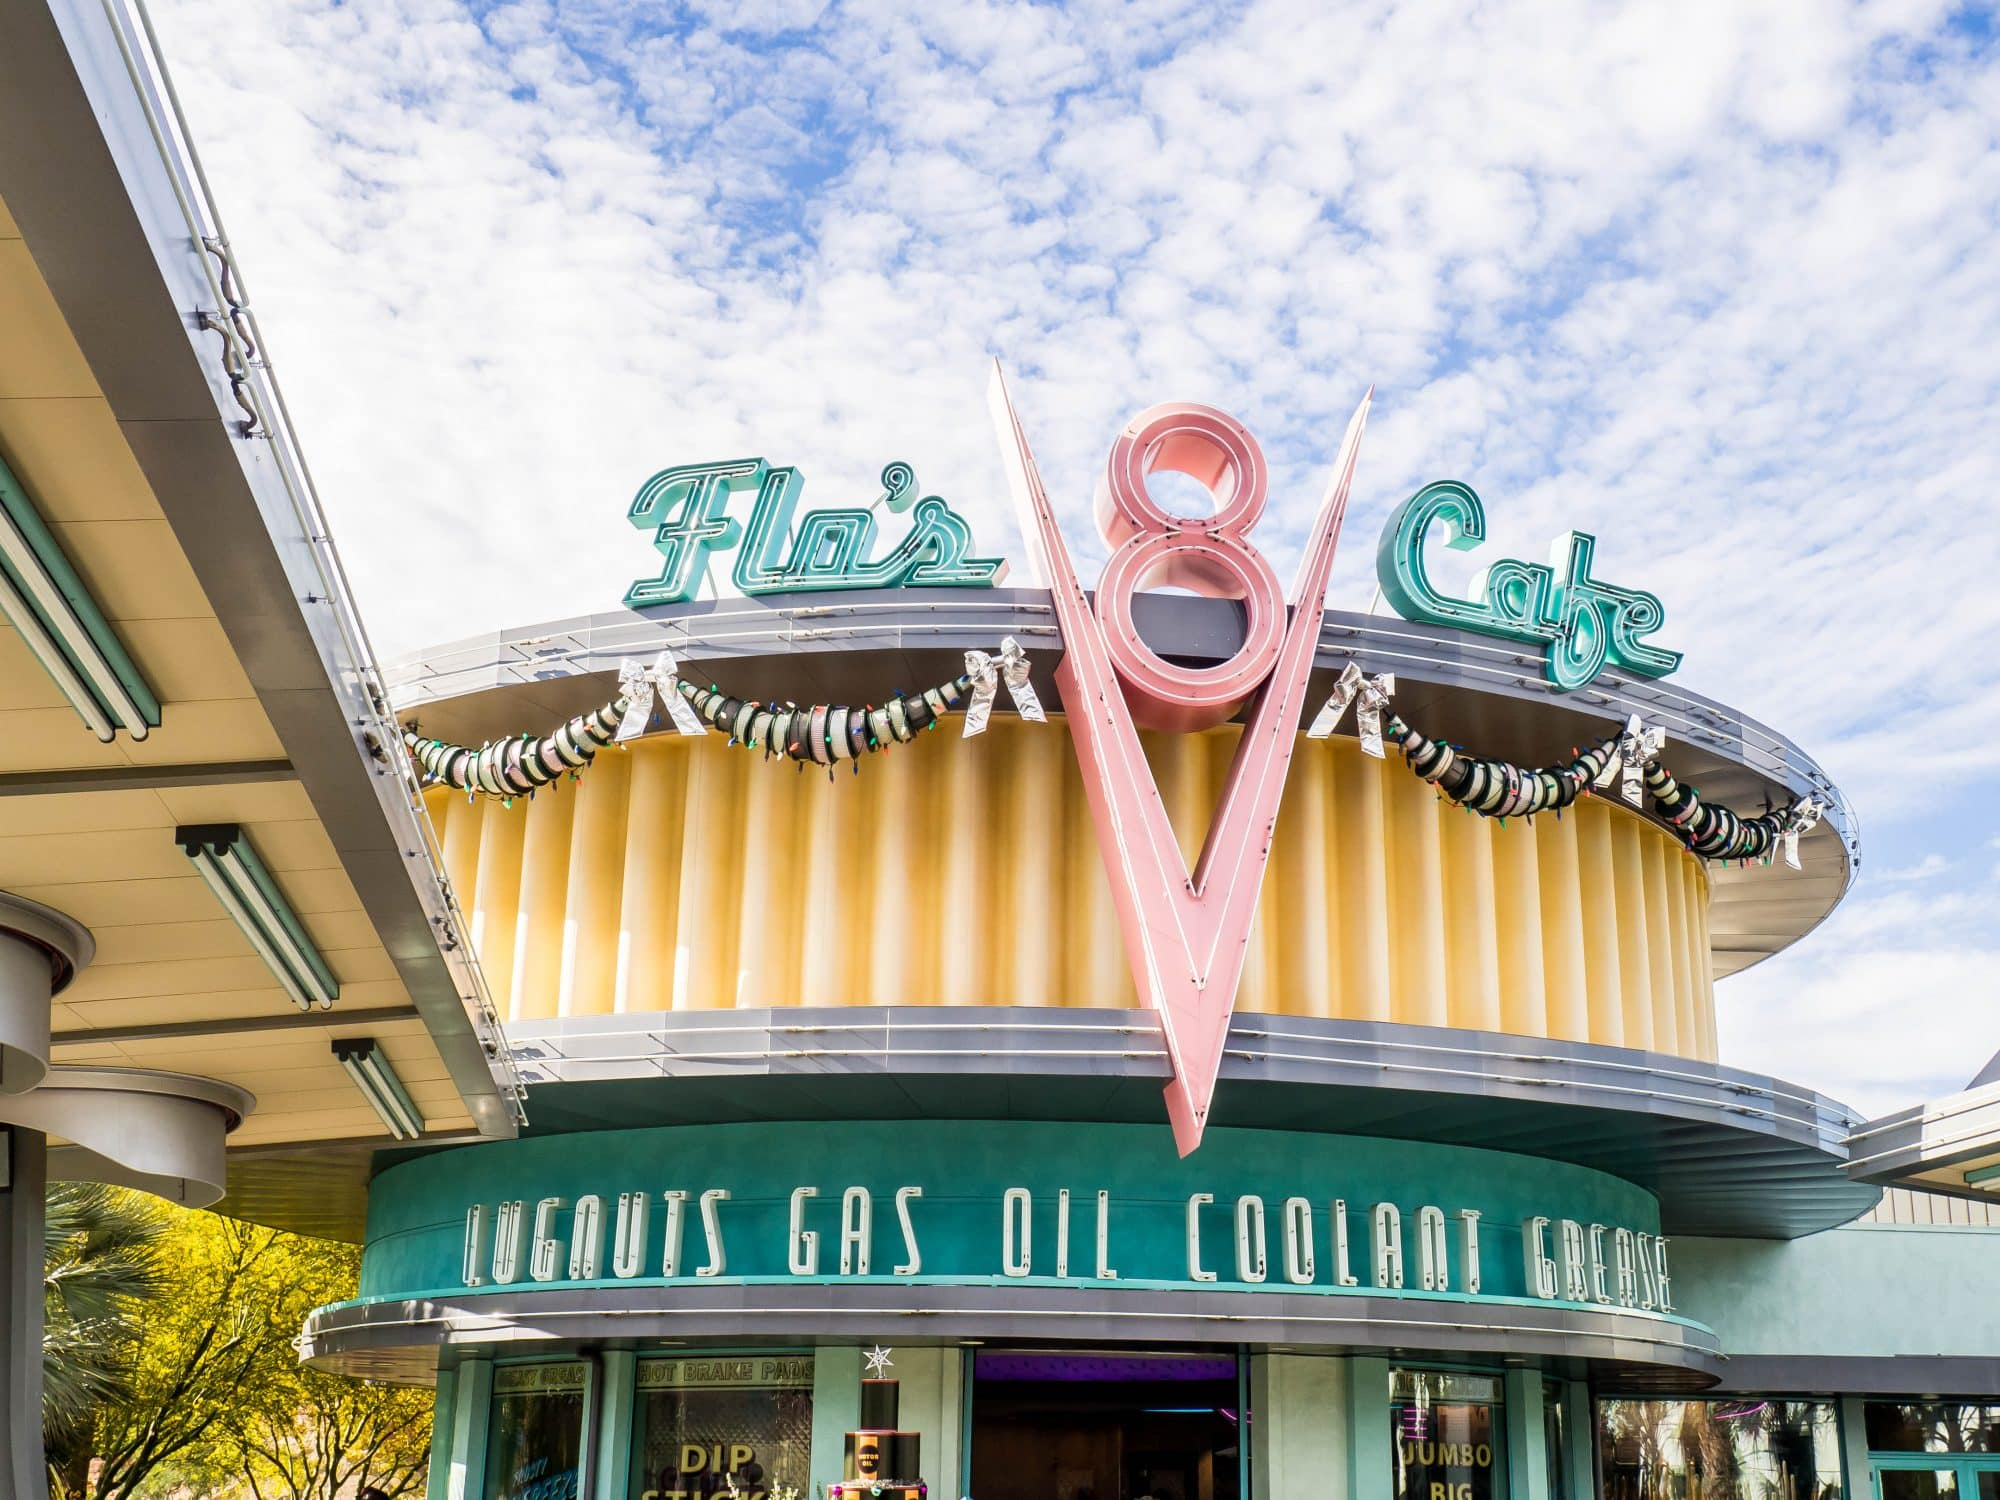 flo's v8 cafe, disneys california adventure